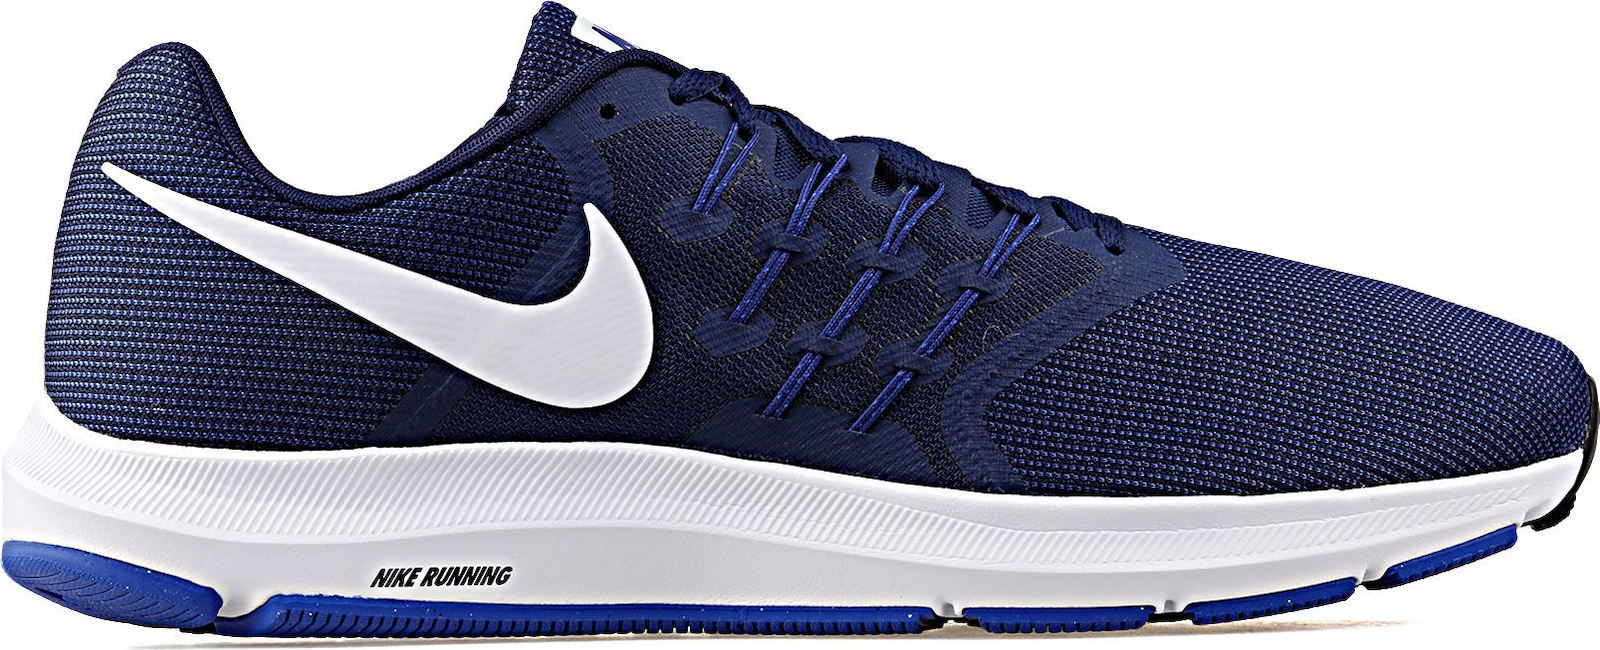 ad455828bd979 Compare. Nike Run Swift Men s Running Shoes Trainers